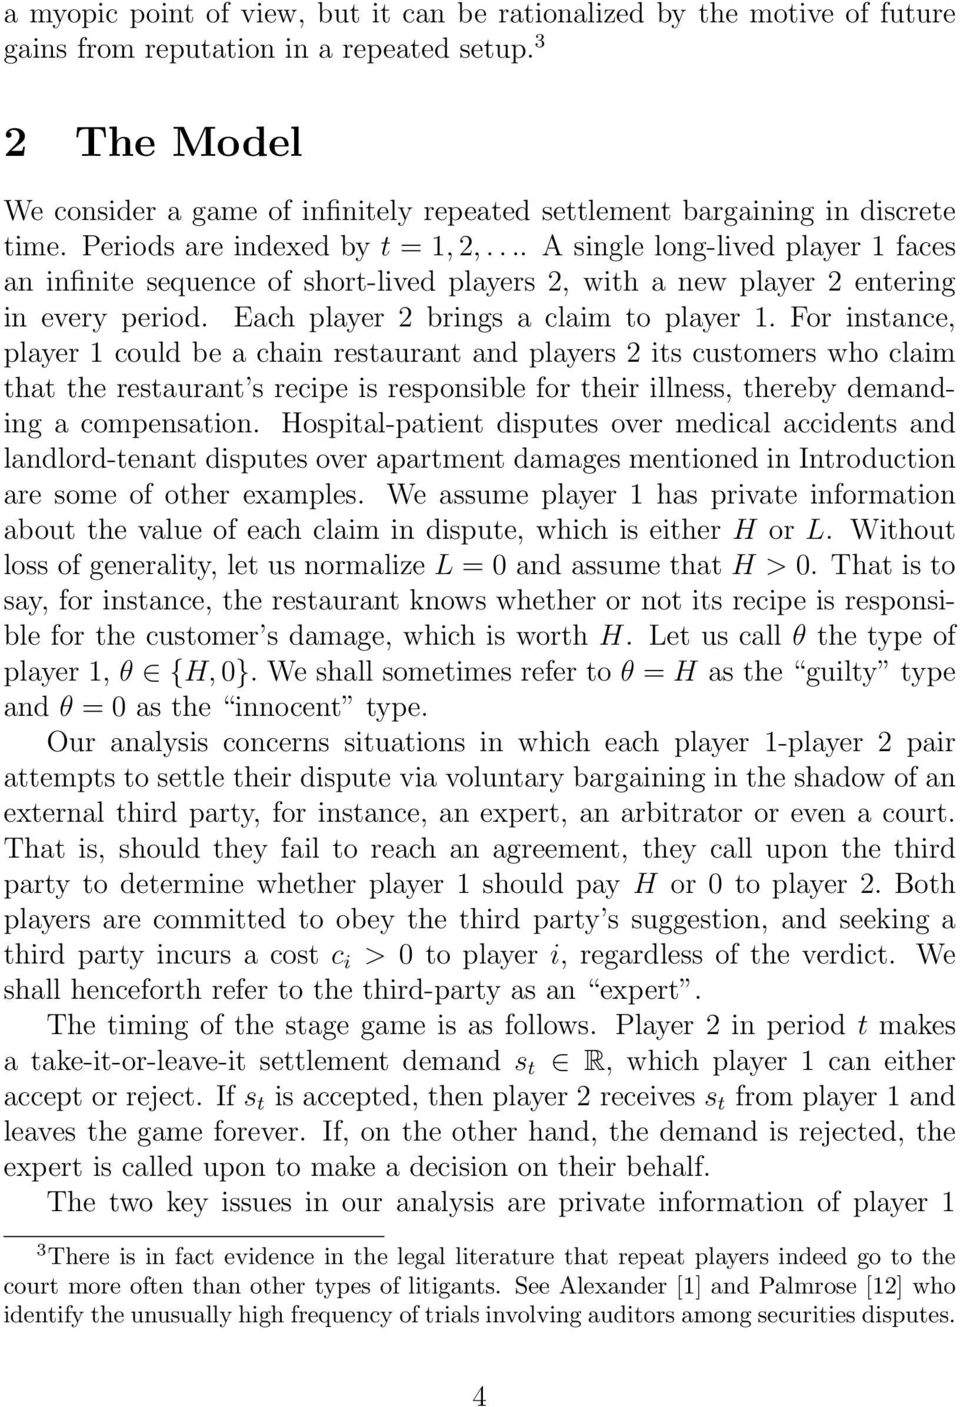 ... A single long-lived player 1 faces an infinite sequence of short-lived players 2, with a new player 2 entering in every period. Each player 2 brings a claim to player 1.